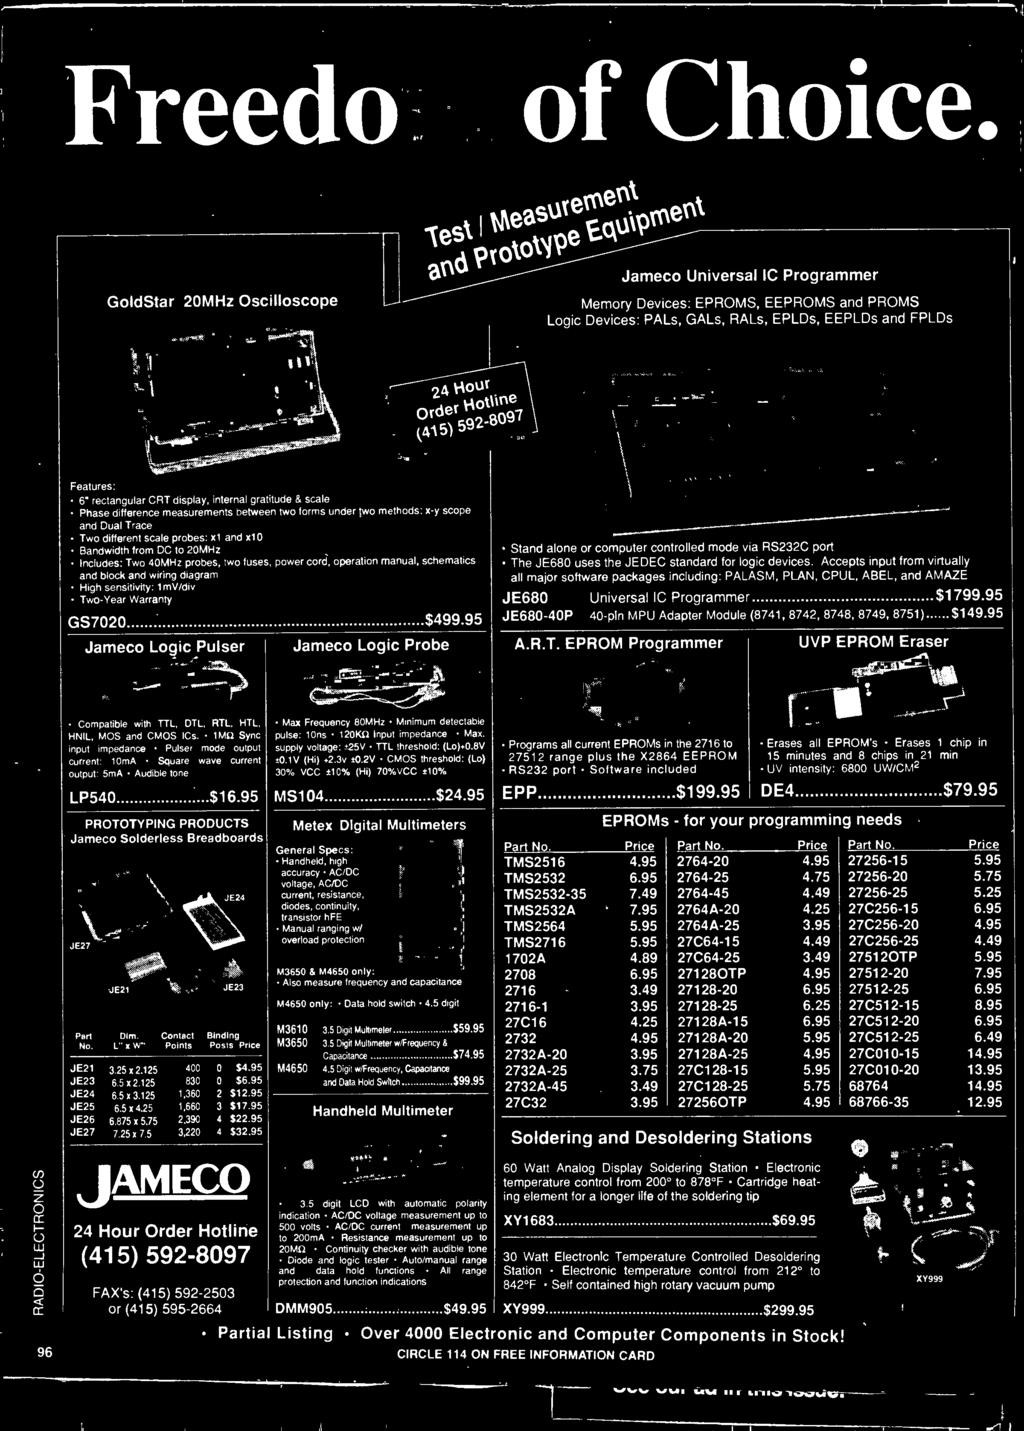 Warranty GS7020 $499.95 Jameco Logic Pulser Jameco Logic Probe Stand alone or computer controlled mode via RS232C port The JE680 uses the JEDEC standard for logic devices.